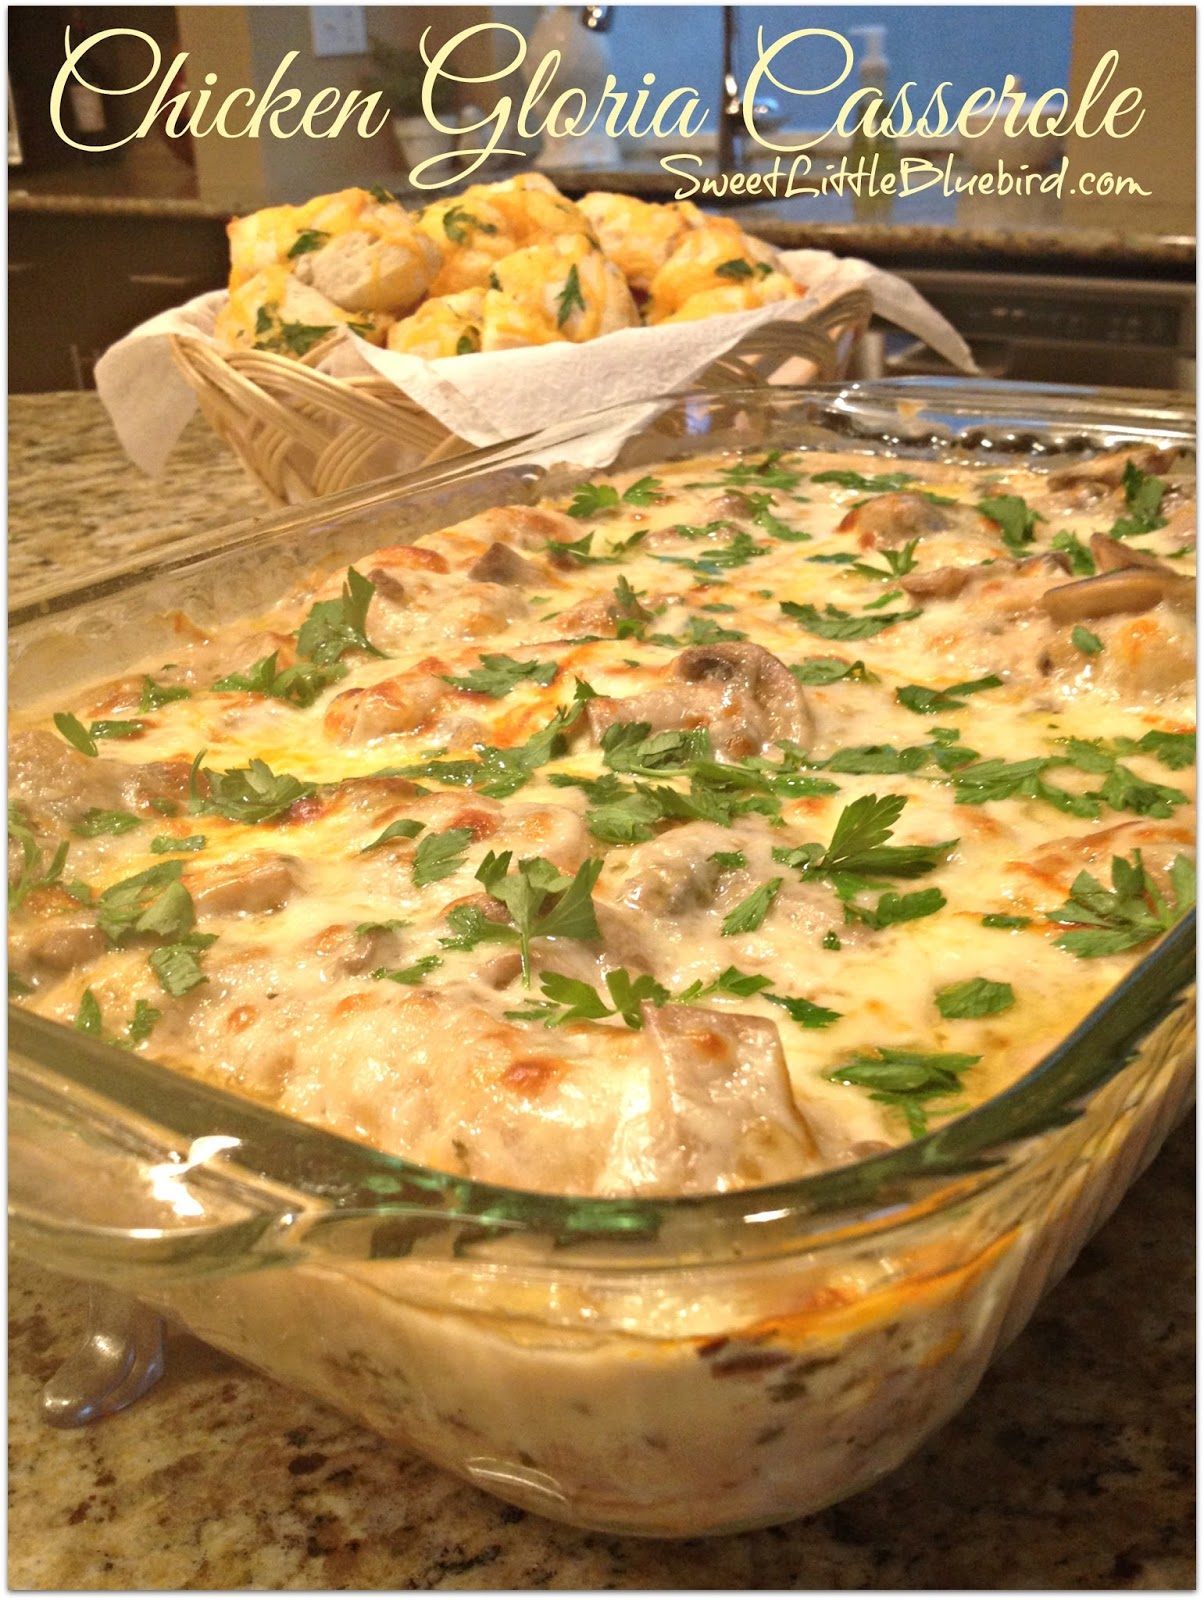 Sweet Little Bluebird: Chicken Gloria Casserole - Tried and True ...